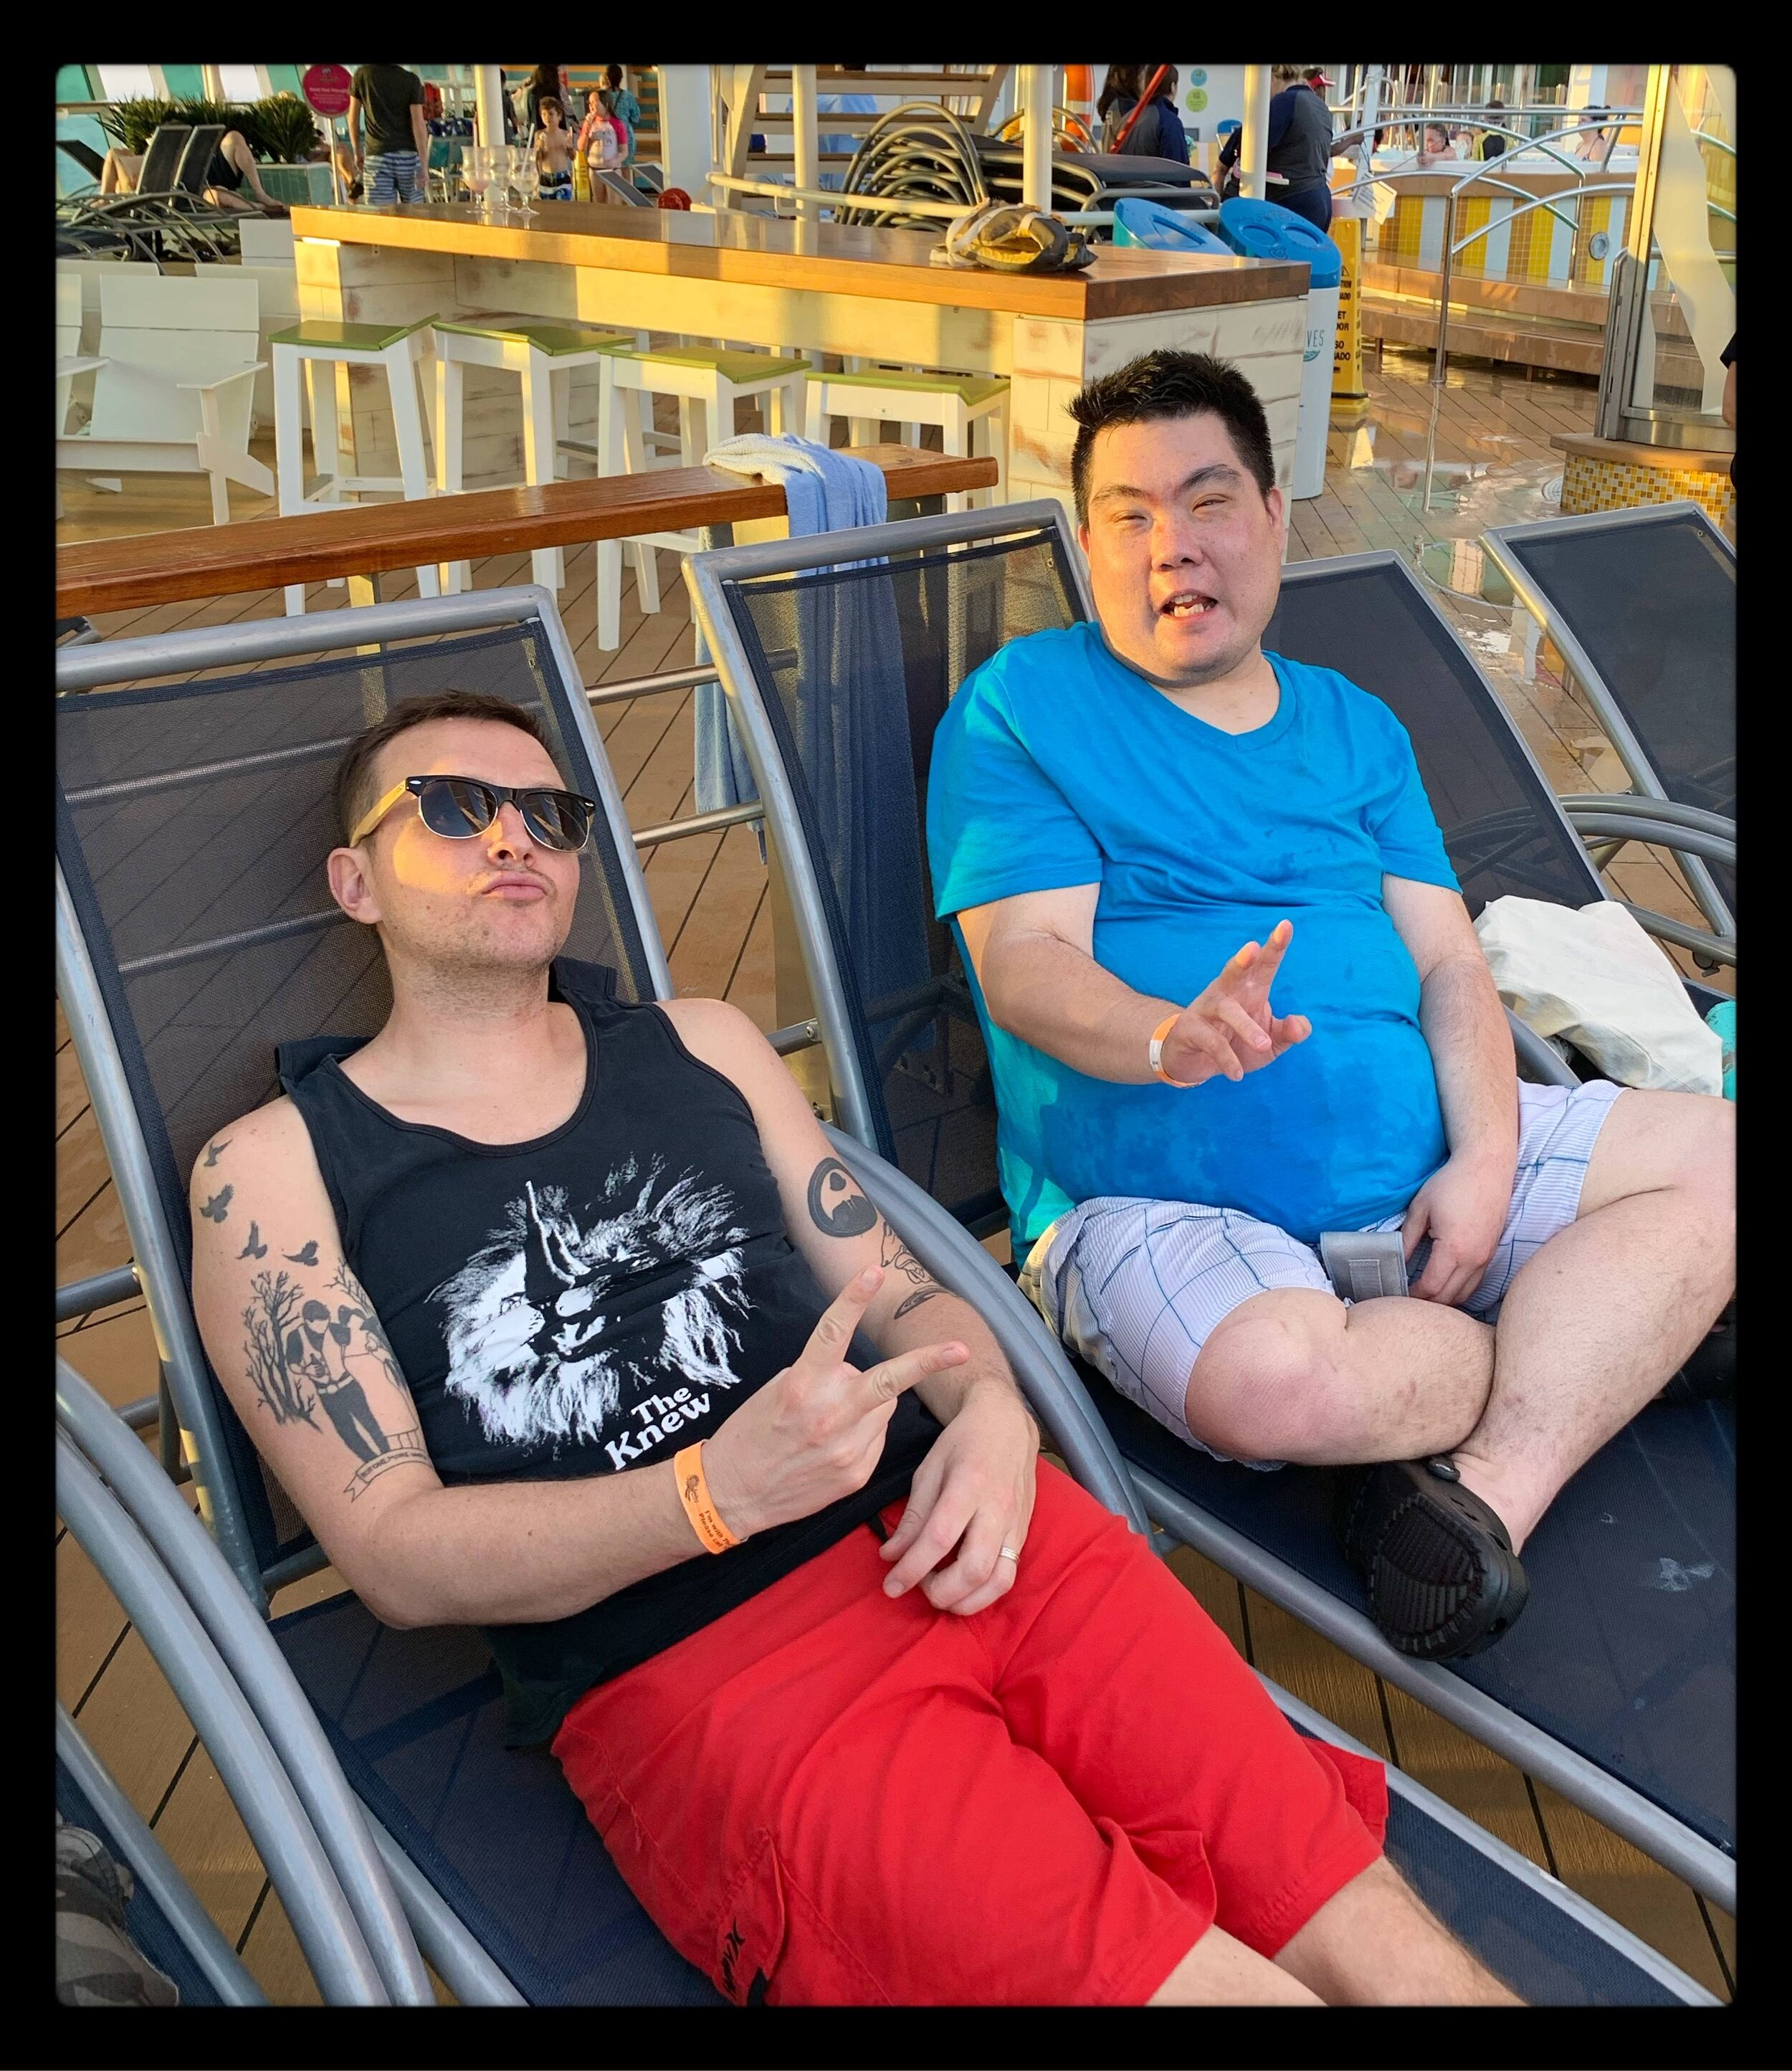 Andy and Nik, kicking it on the deck of the ship.